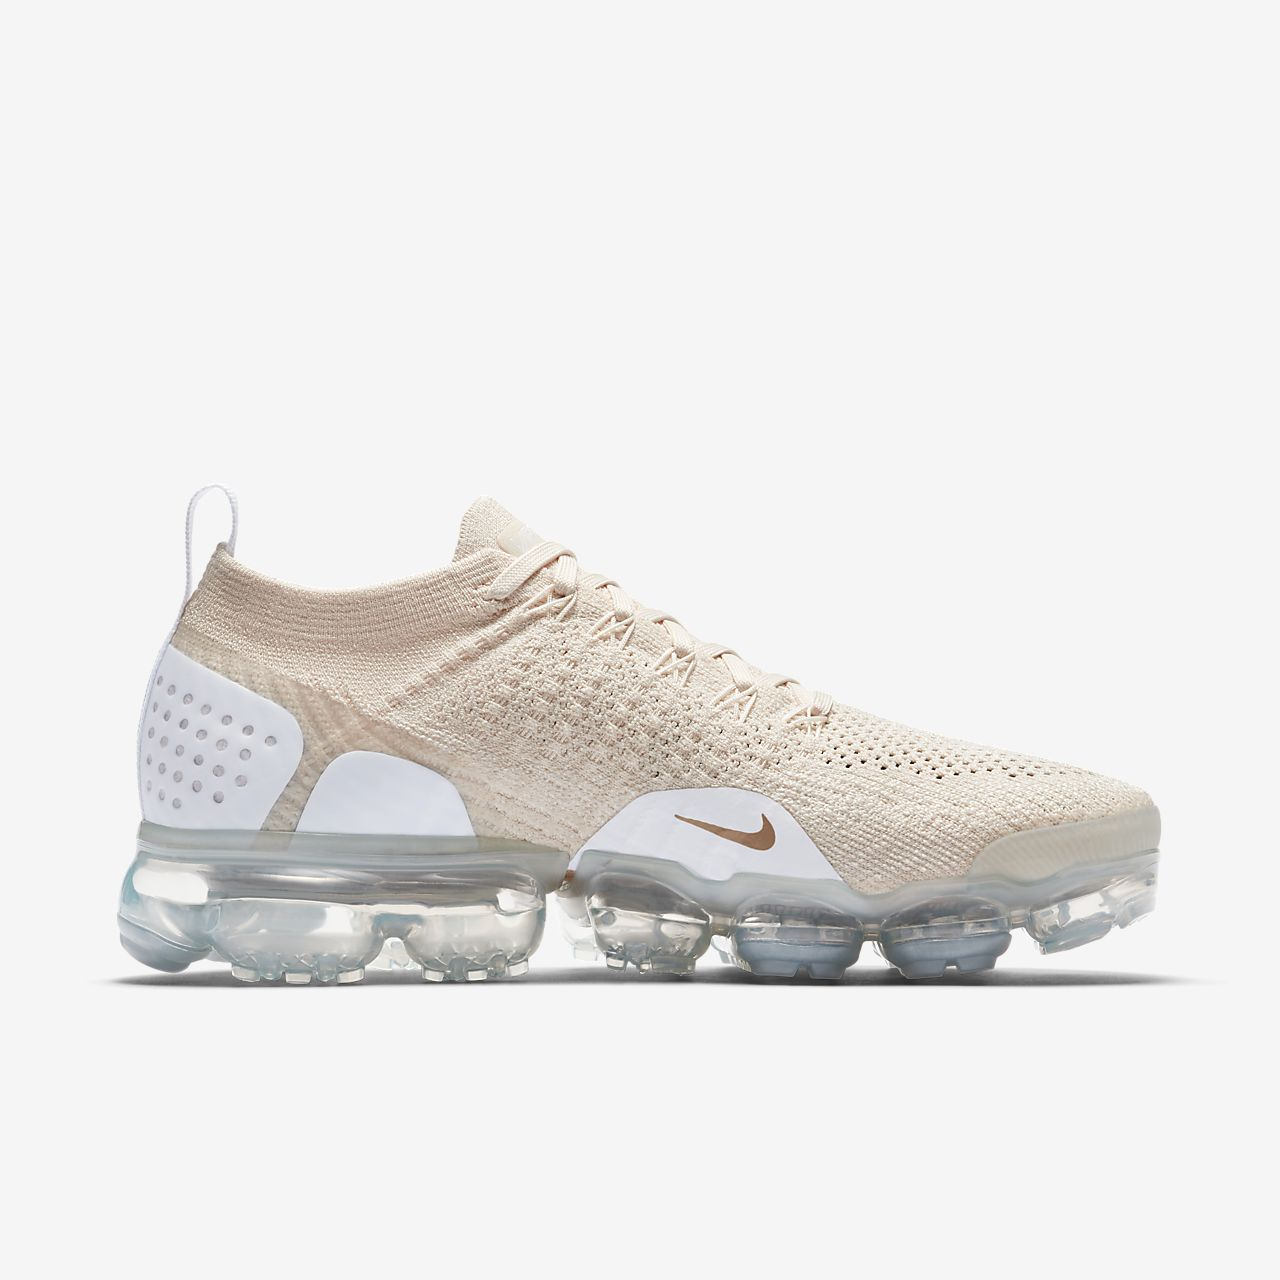 NIKE AIR VAPORMAX FLYKNIT 20 Vapor Zoom Running Shoes Light Golden 942843201 Super Deals